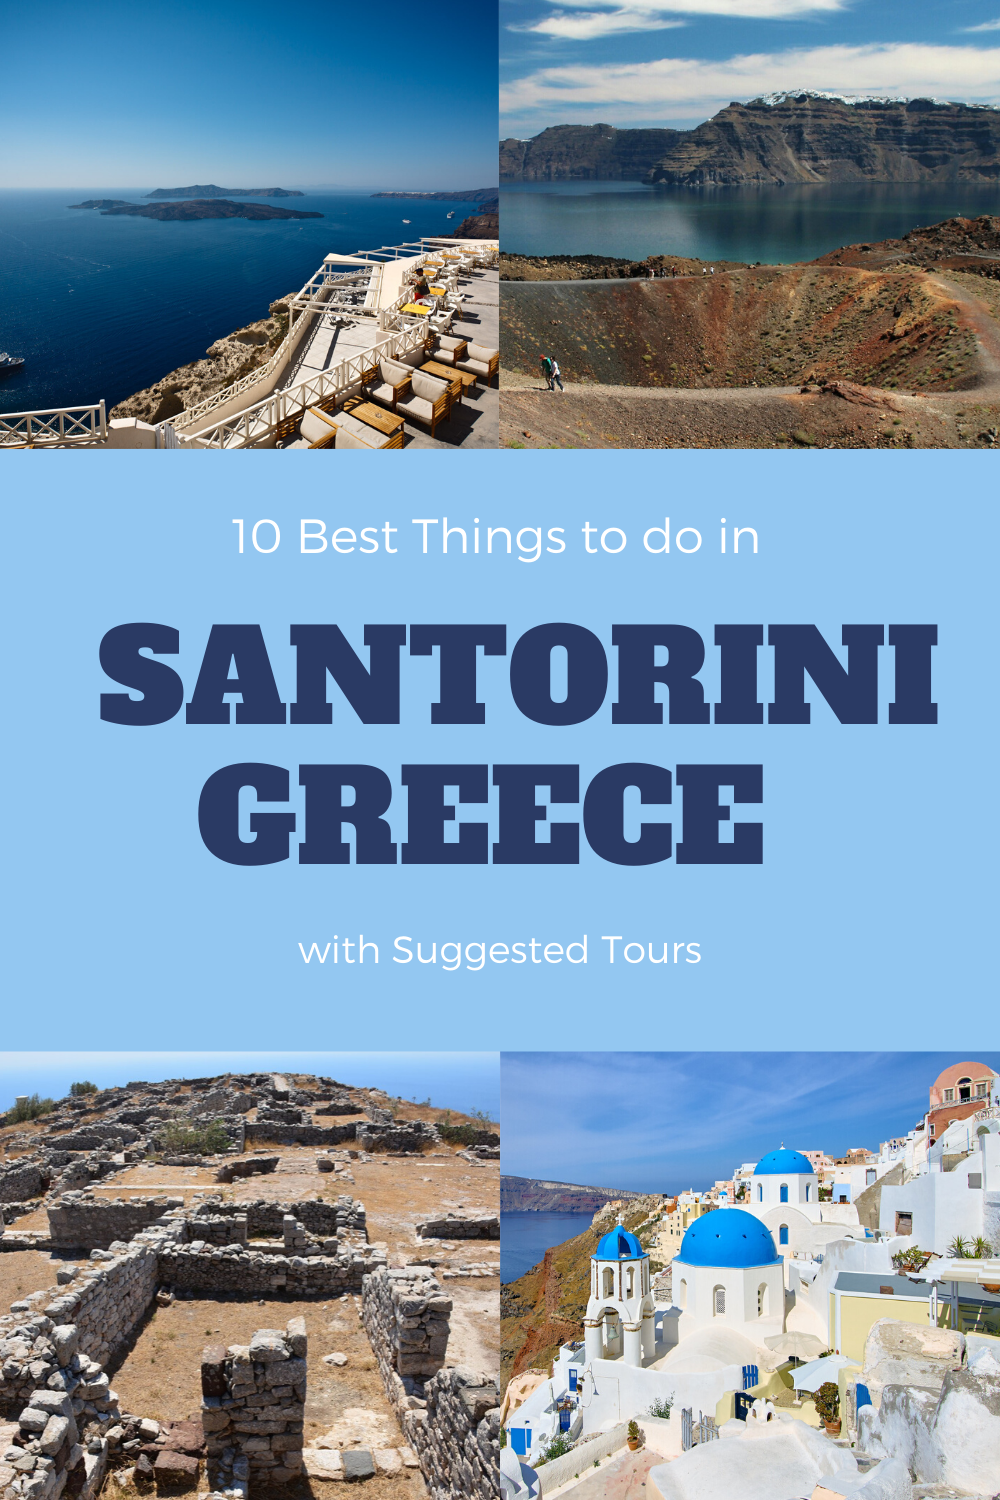 10 Best Things to do in Santorini, Greece